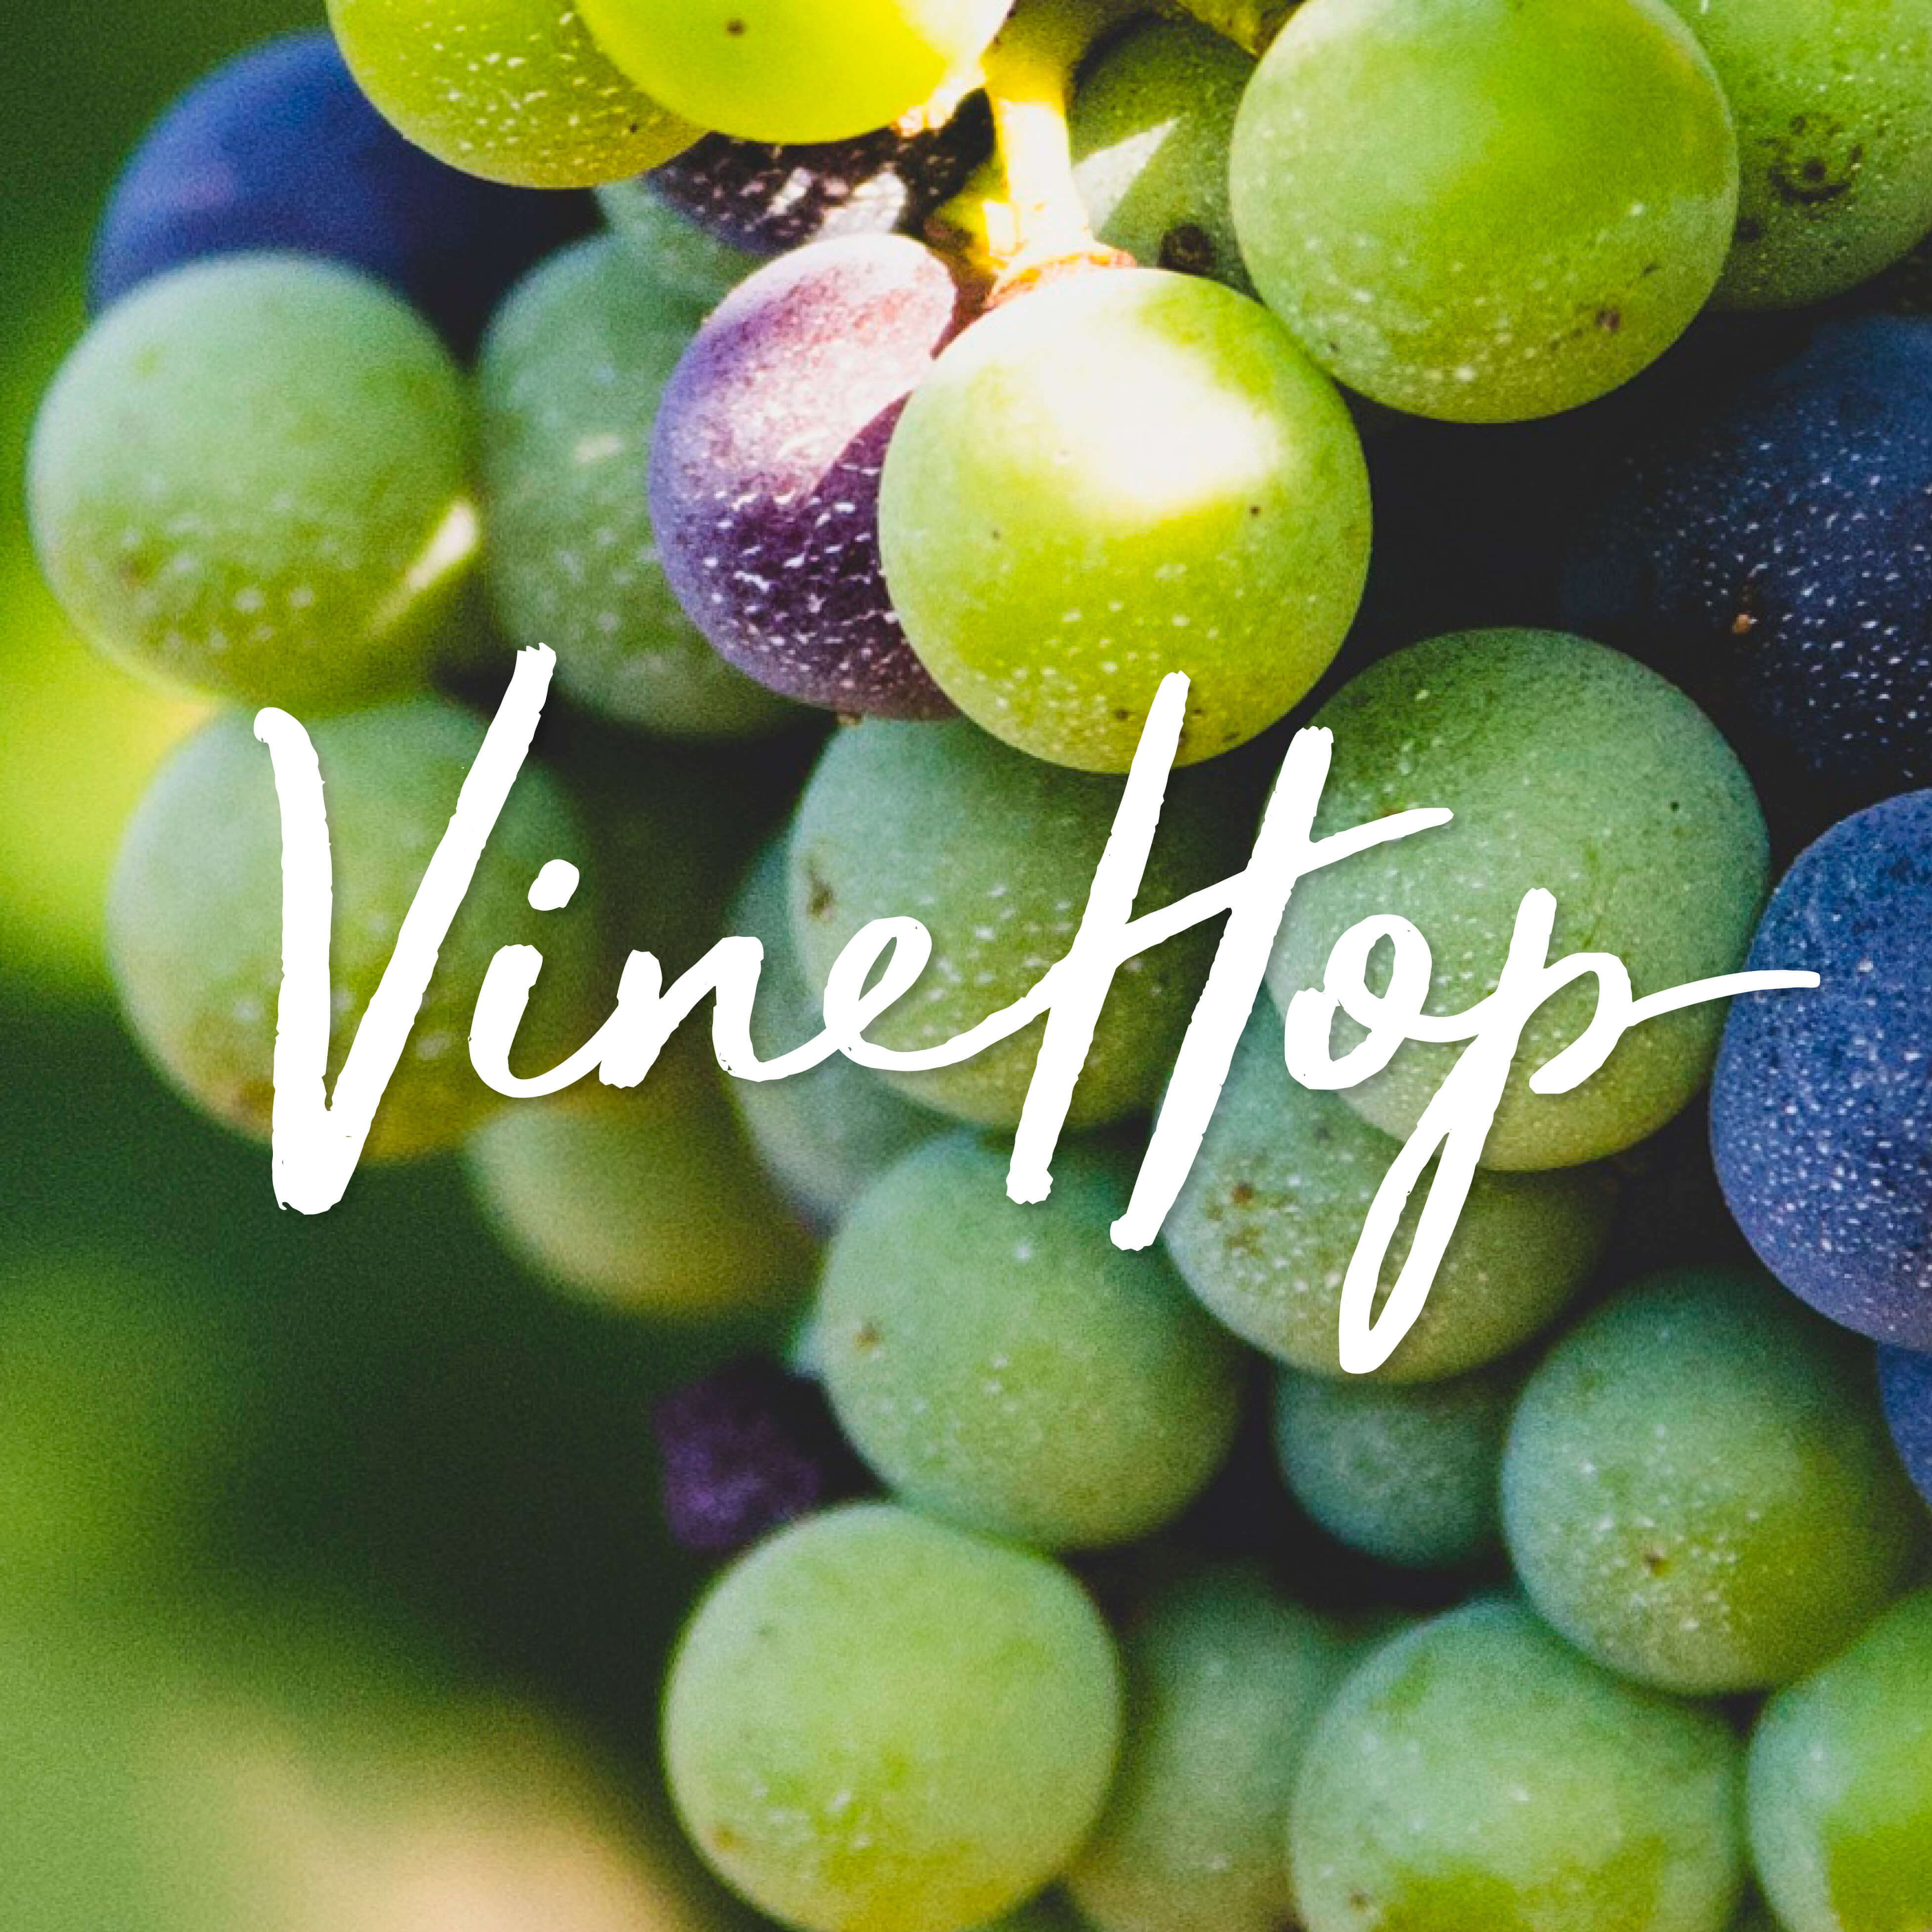 VineHope Festival Mornington Peninsula Branding